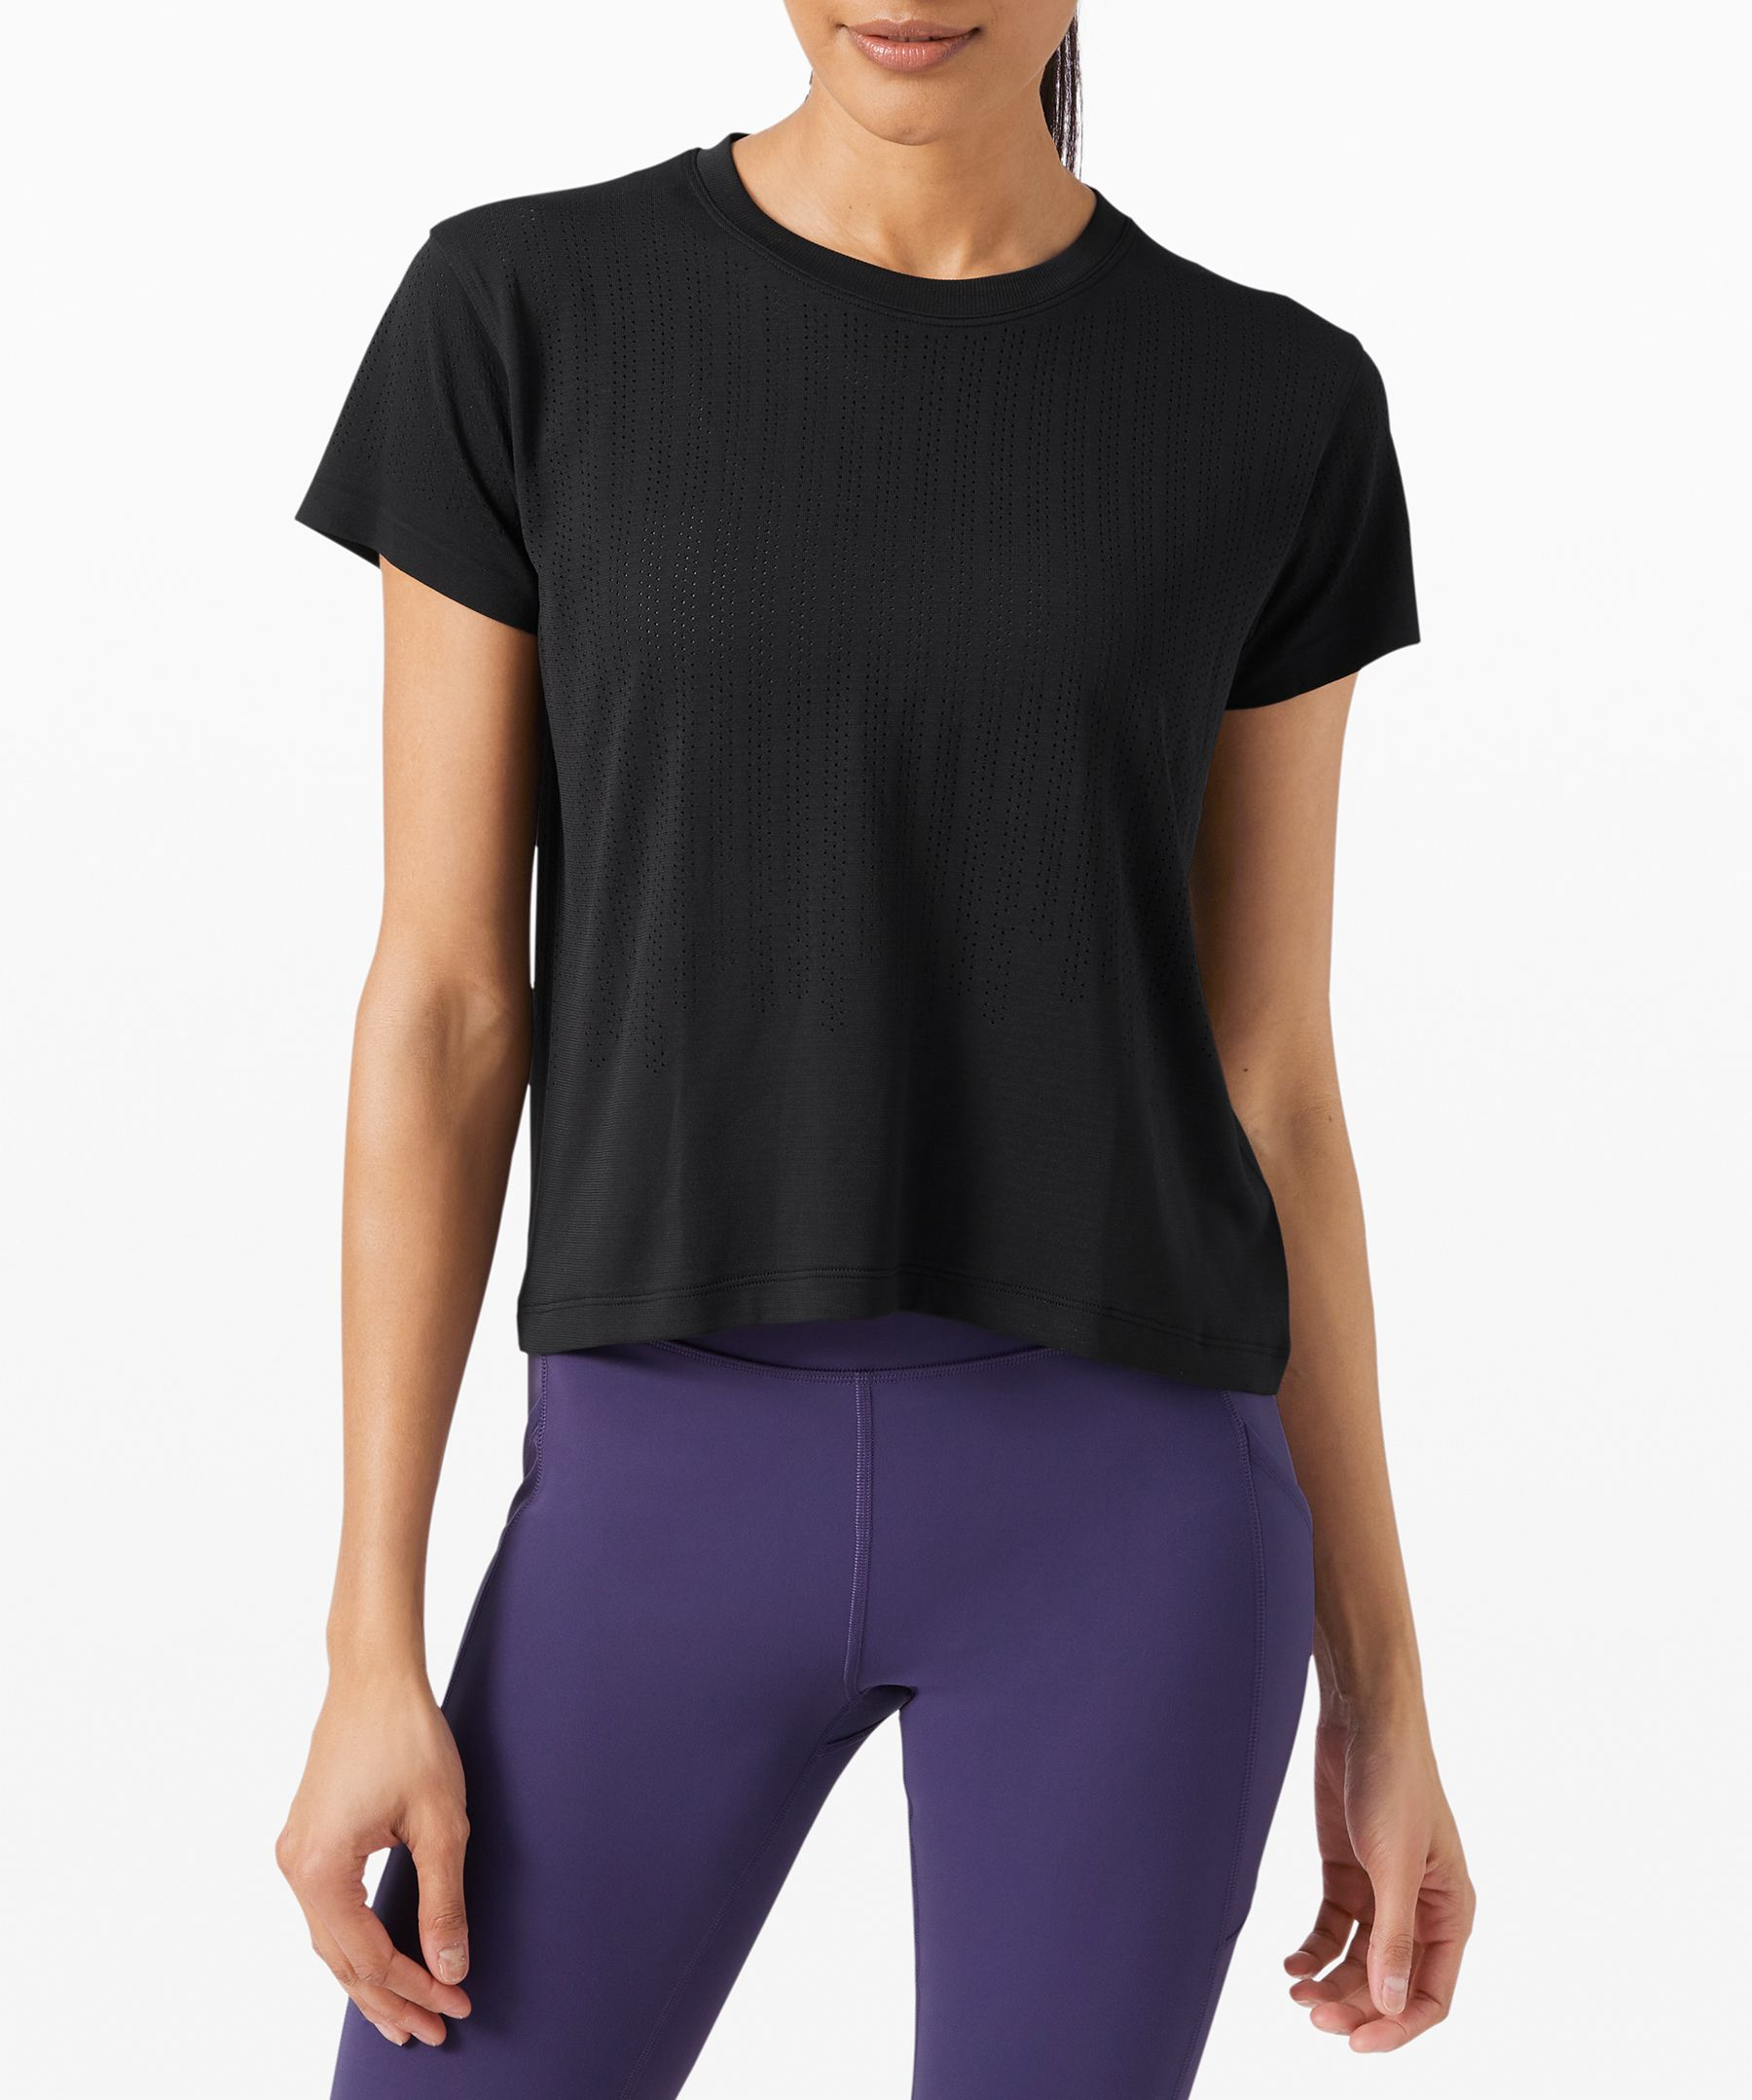 Train hard in this soft,  sweat-wicking top. Its  breathable open-hole  construction helps keep you  cool as the intensity picks up.